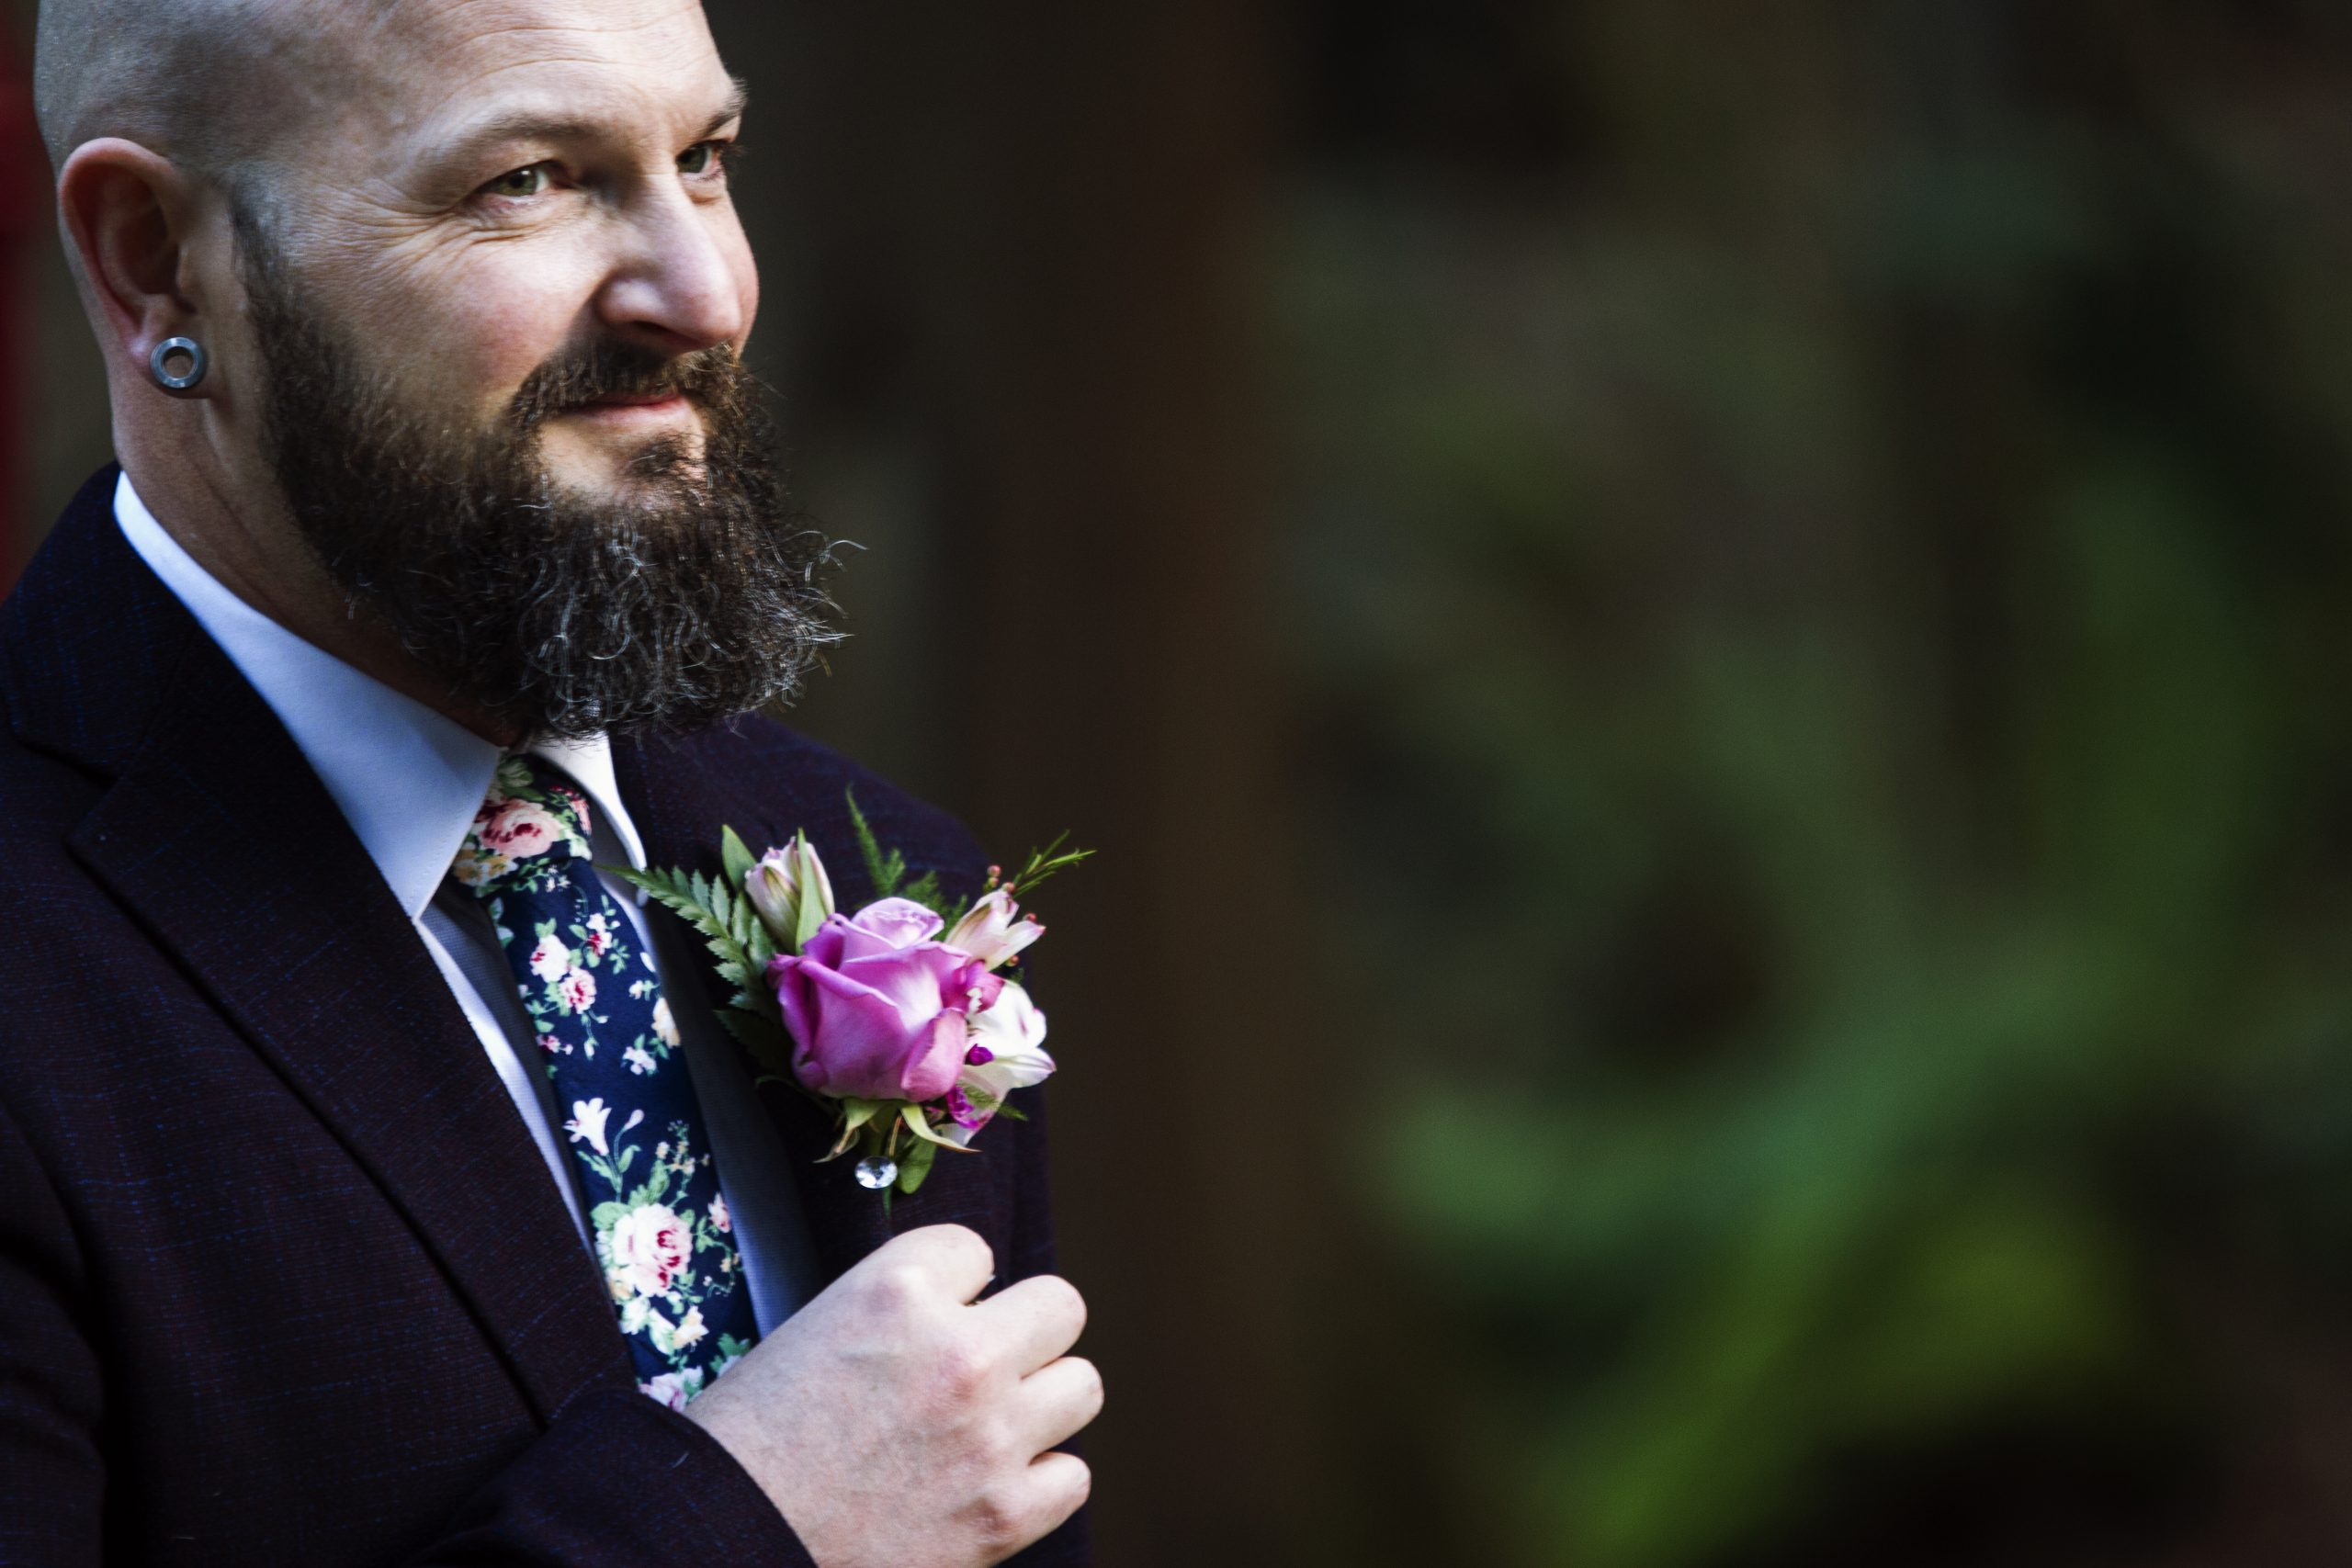 Nanaimo Elopement Photographer | Parksville Elopement Photography | Elopements | Elopement Inspiration